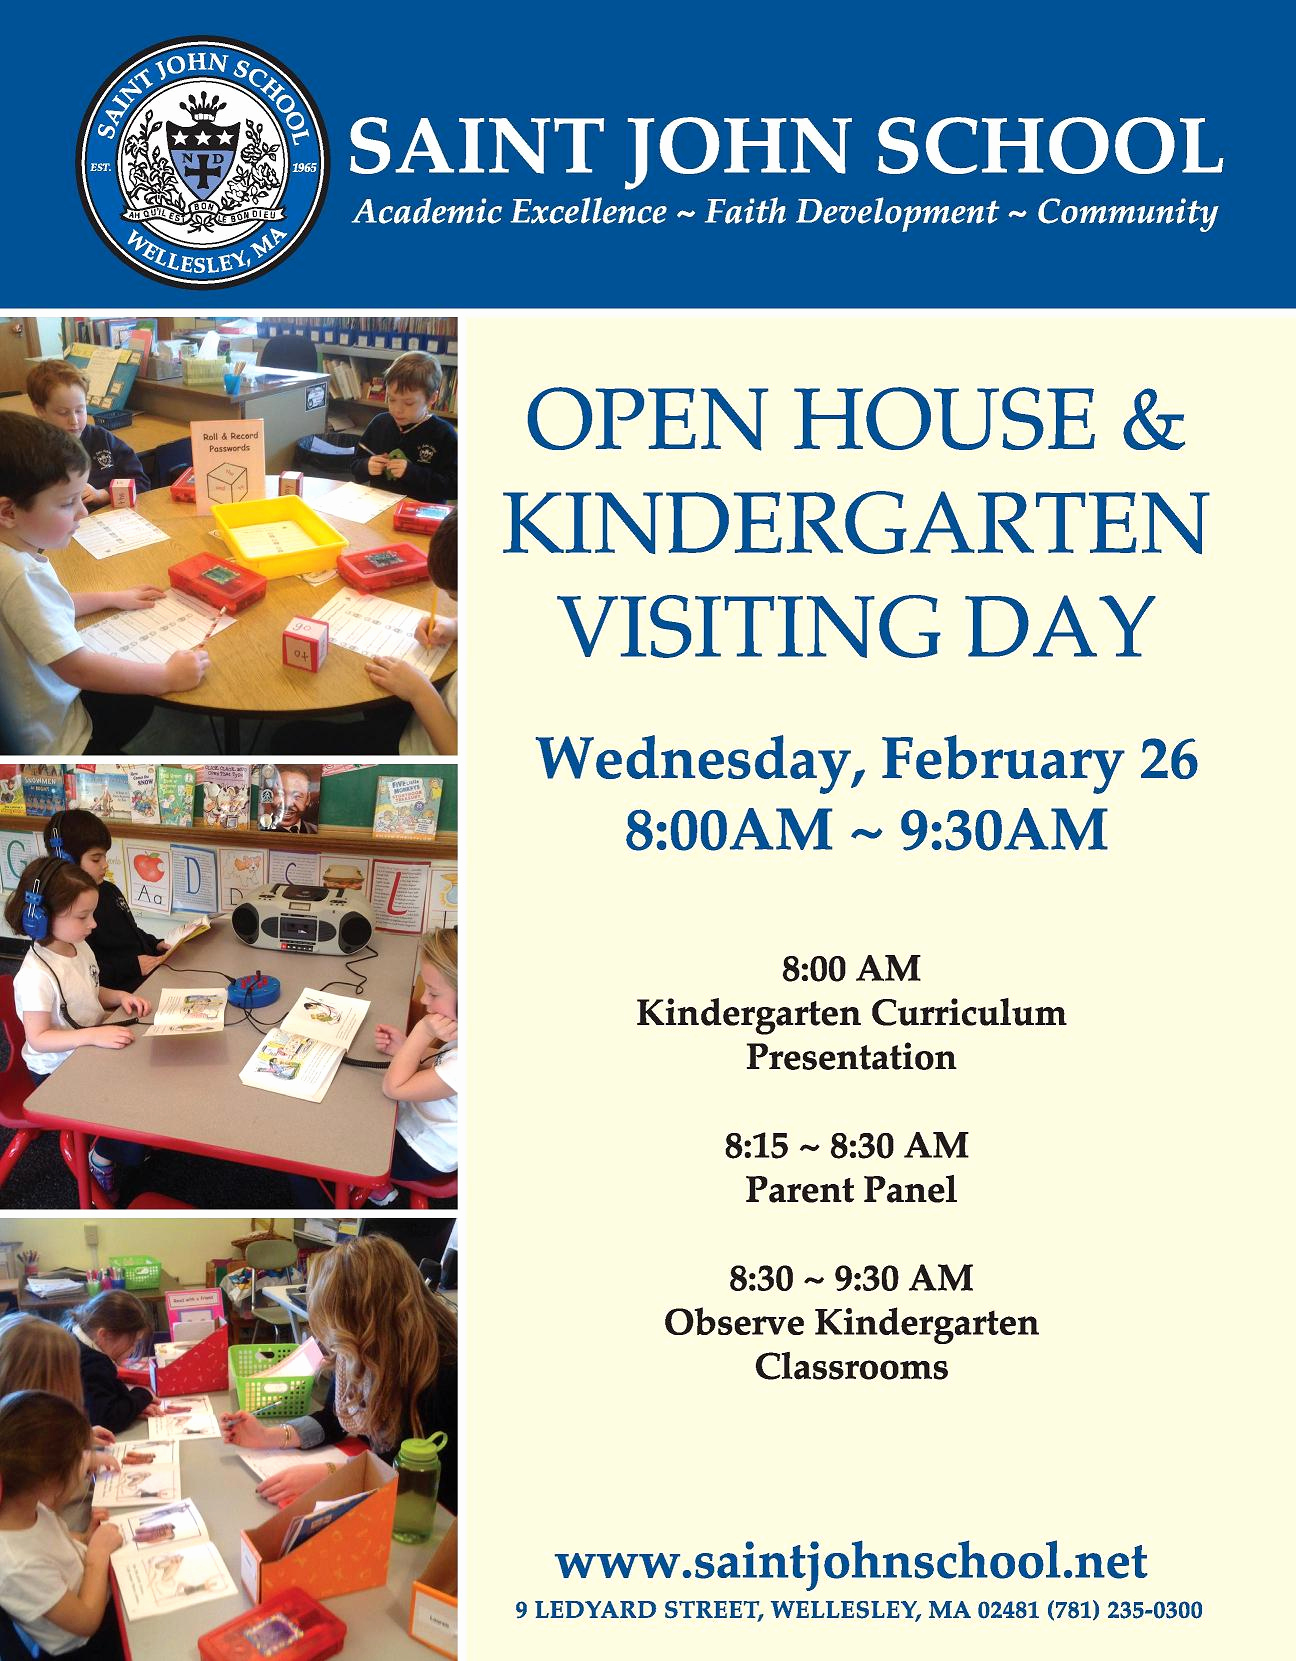 Preschool Open House Invitation Awesome Kindergarten Visiting Day Open House Flyer